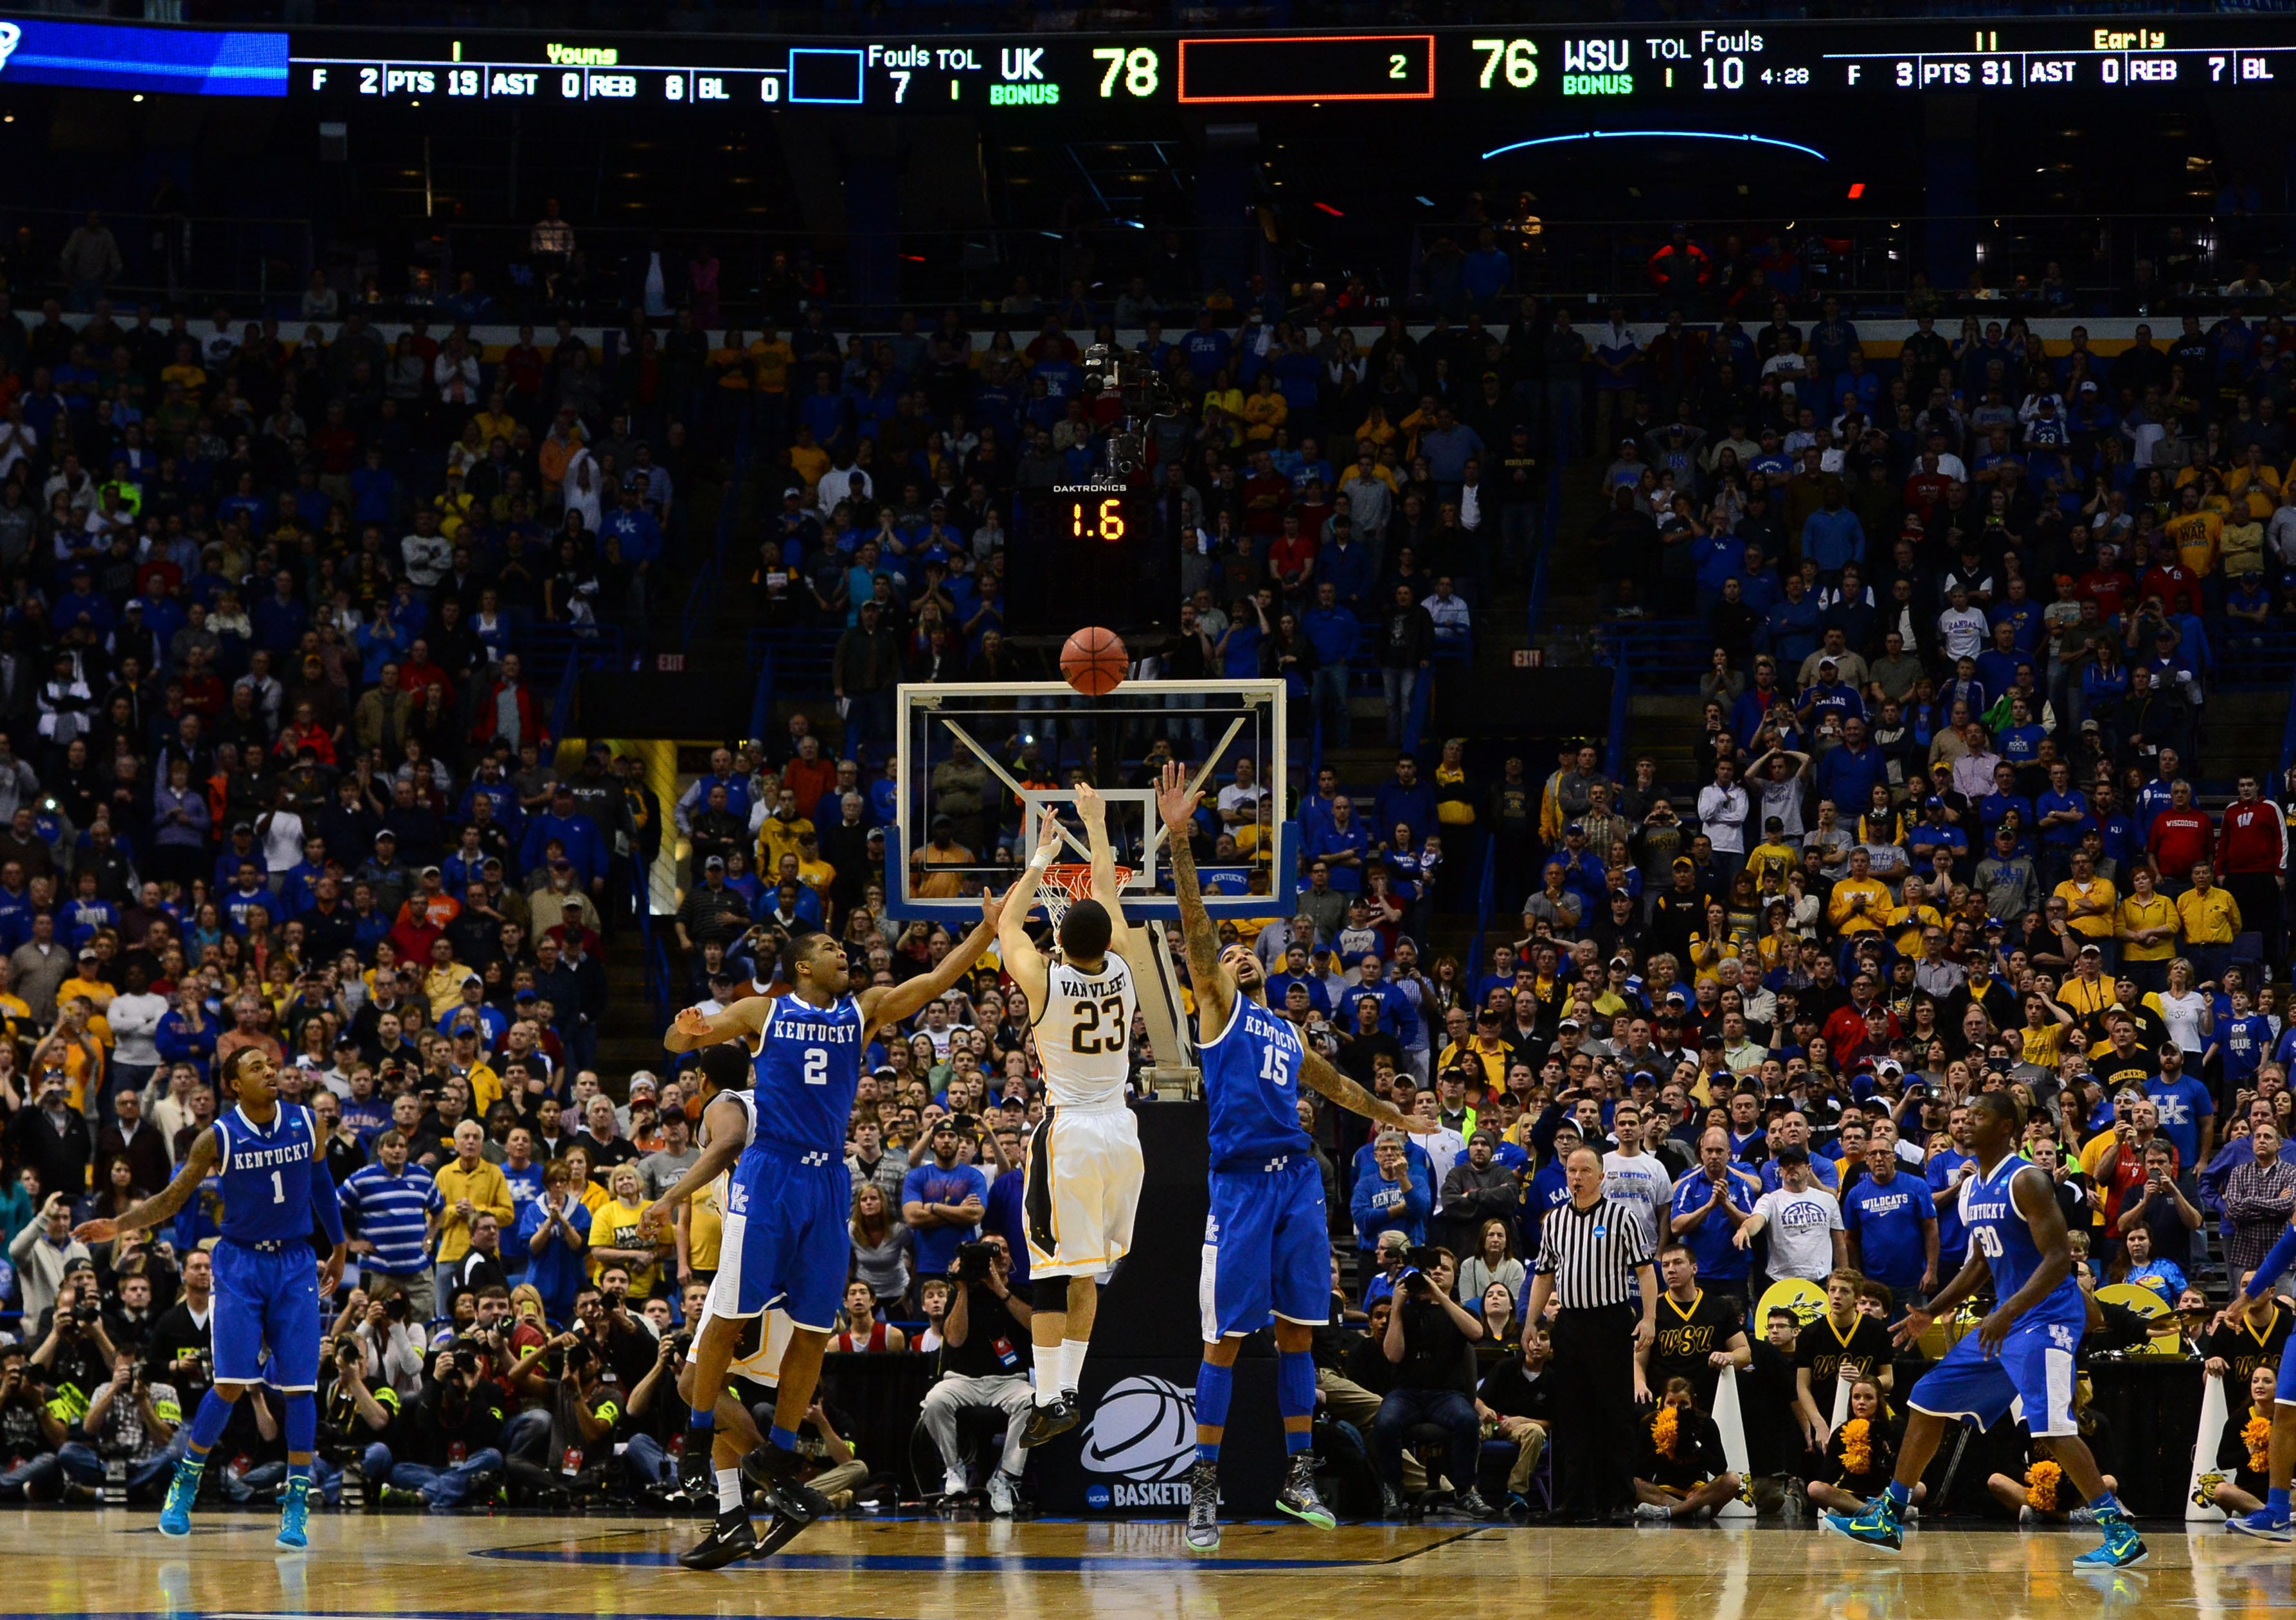 Wichita State guard Fred VanVleet takes a 3-point shot while defended by Kentucky forward Willie Cauley-Stein (15) and Aaron Harrison (2) at the 2014 NCAA Tournament.